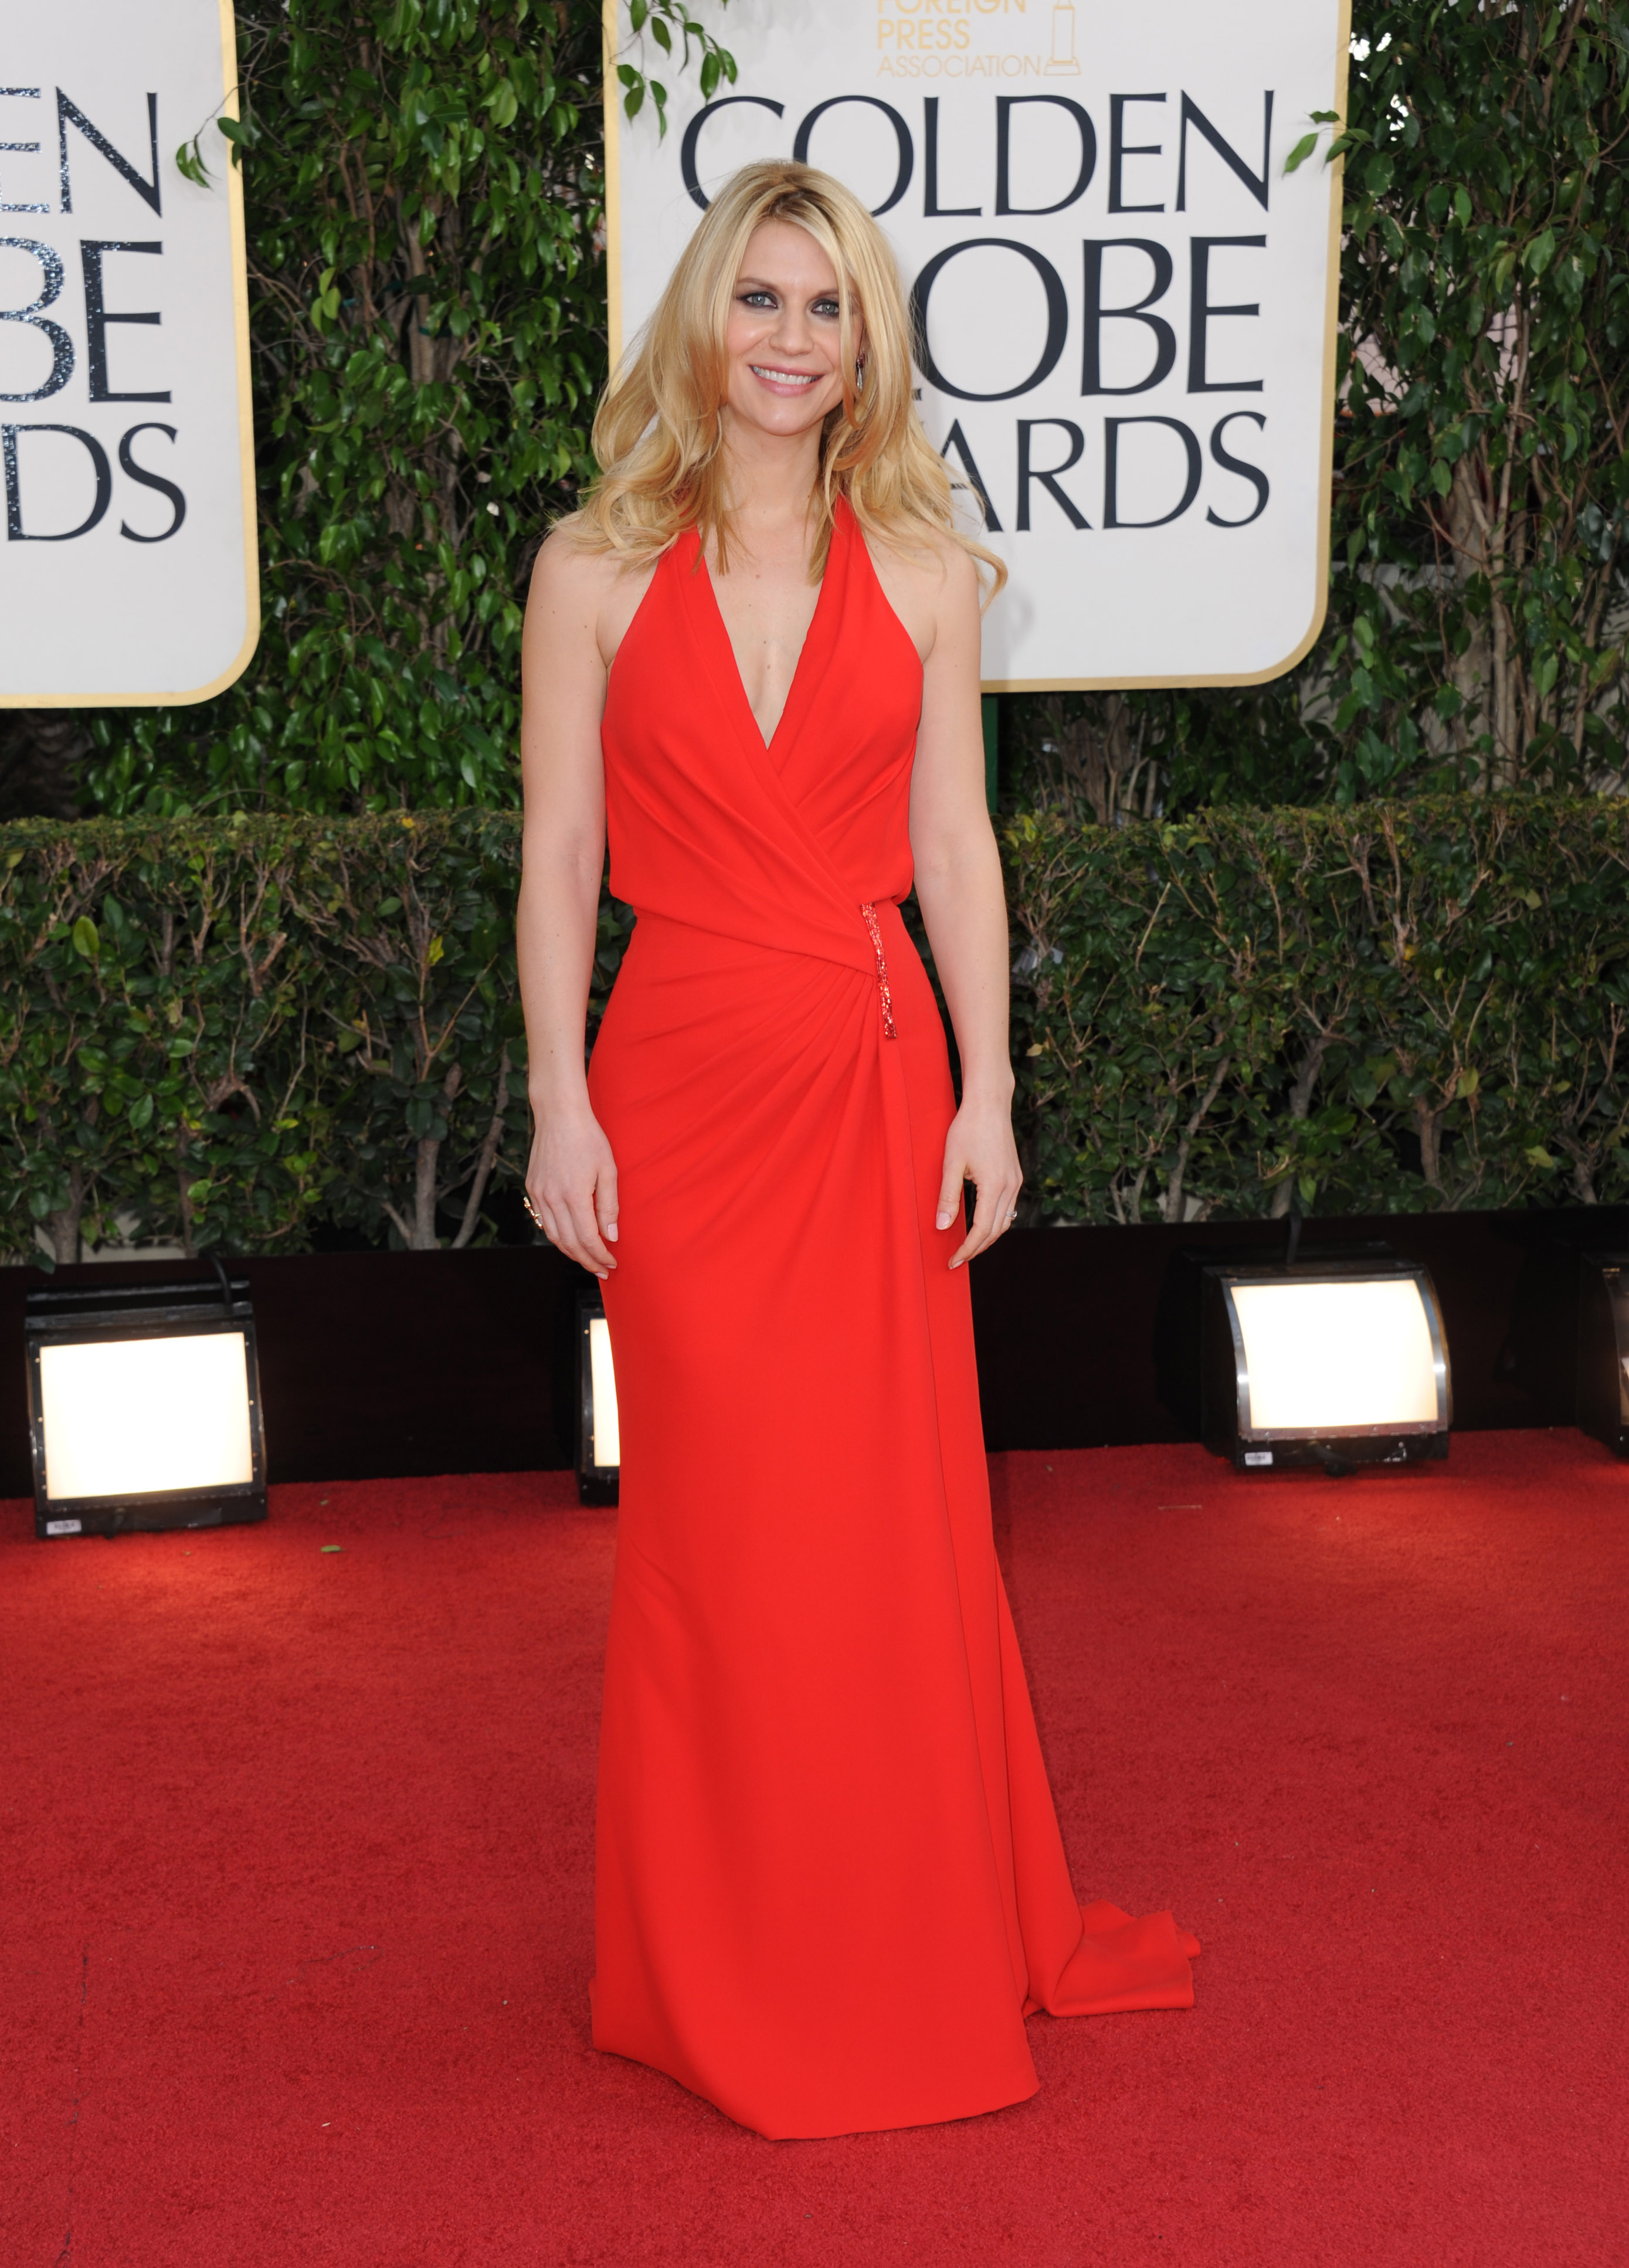 Claire Danes proves she's unbeatable at the Golden Globes